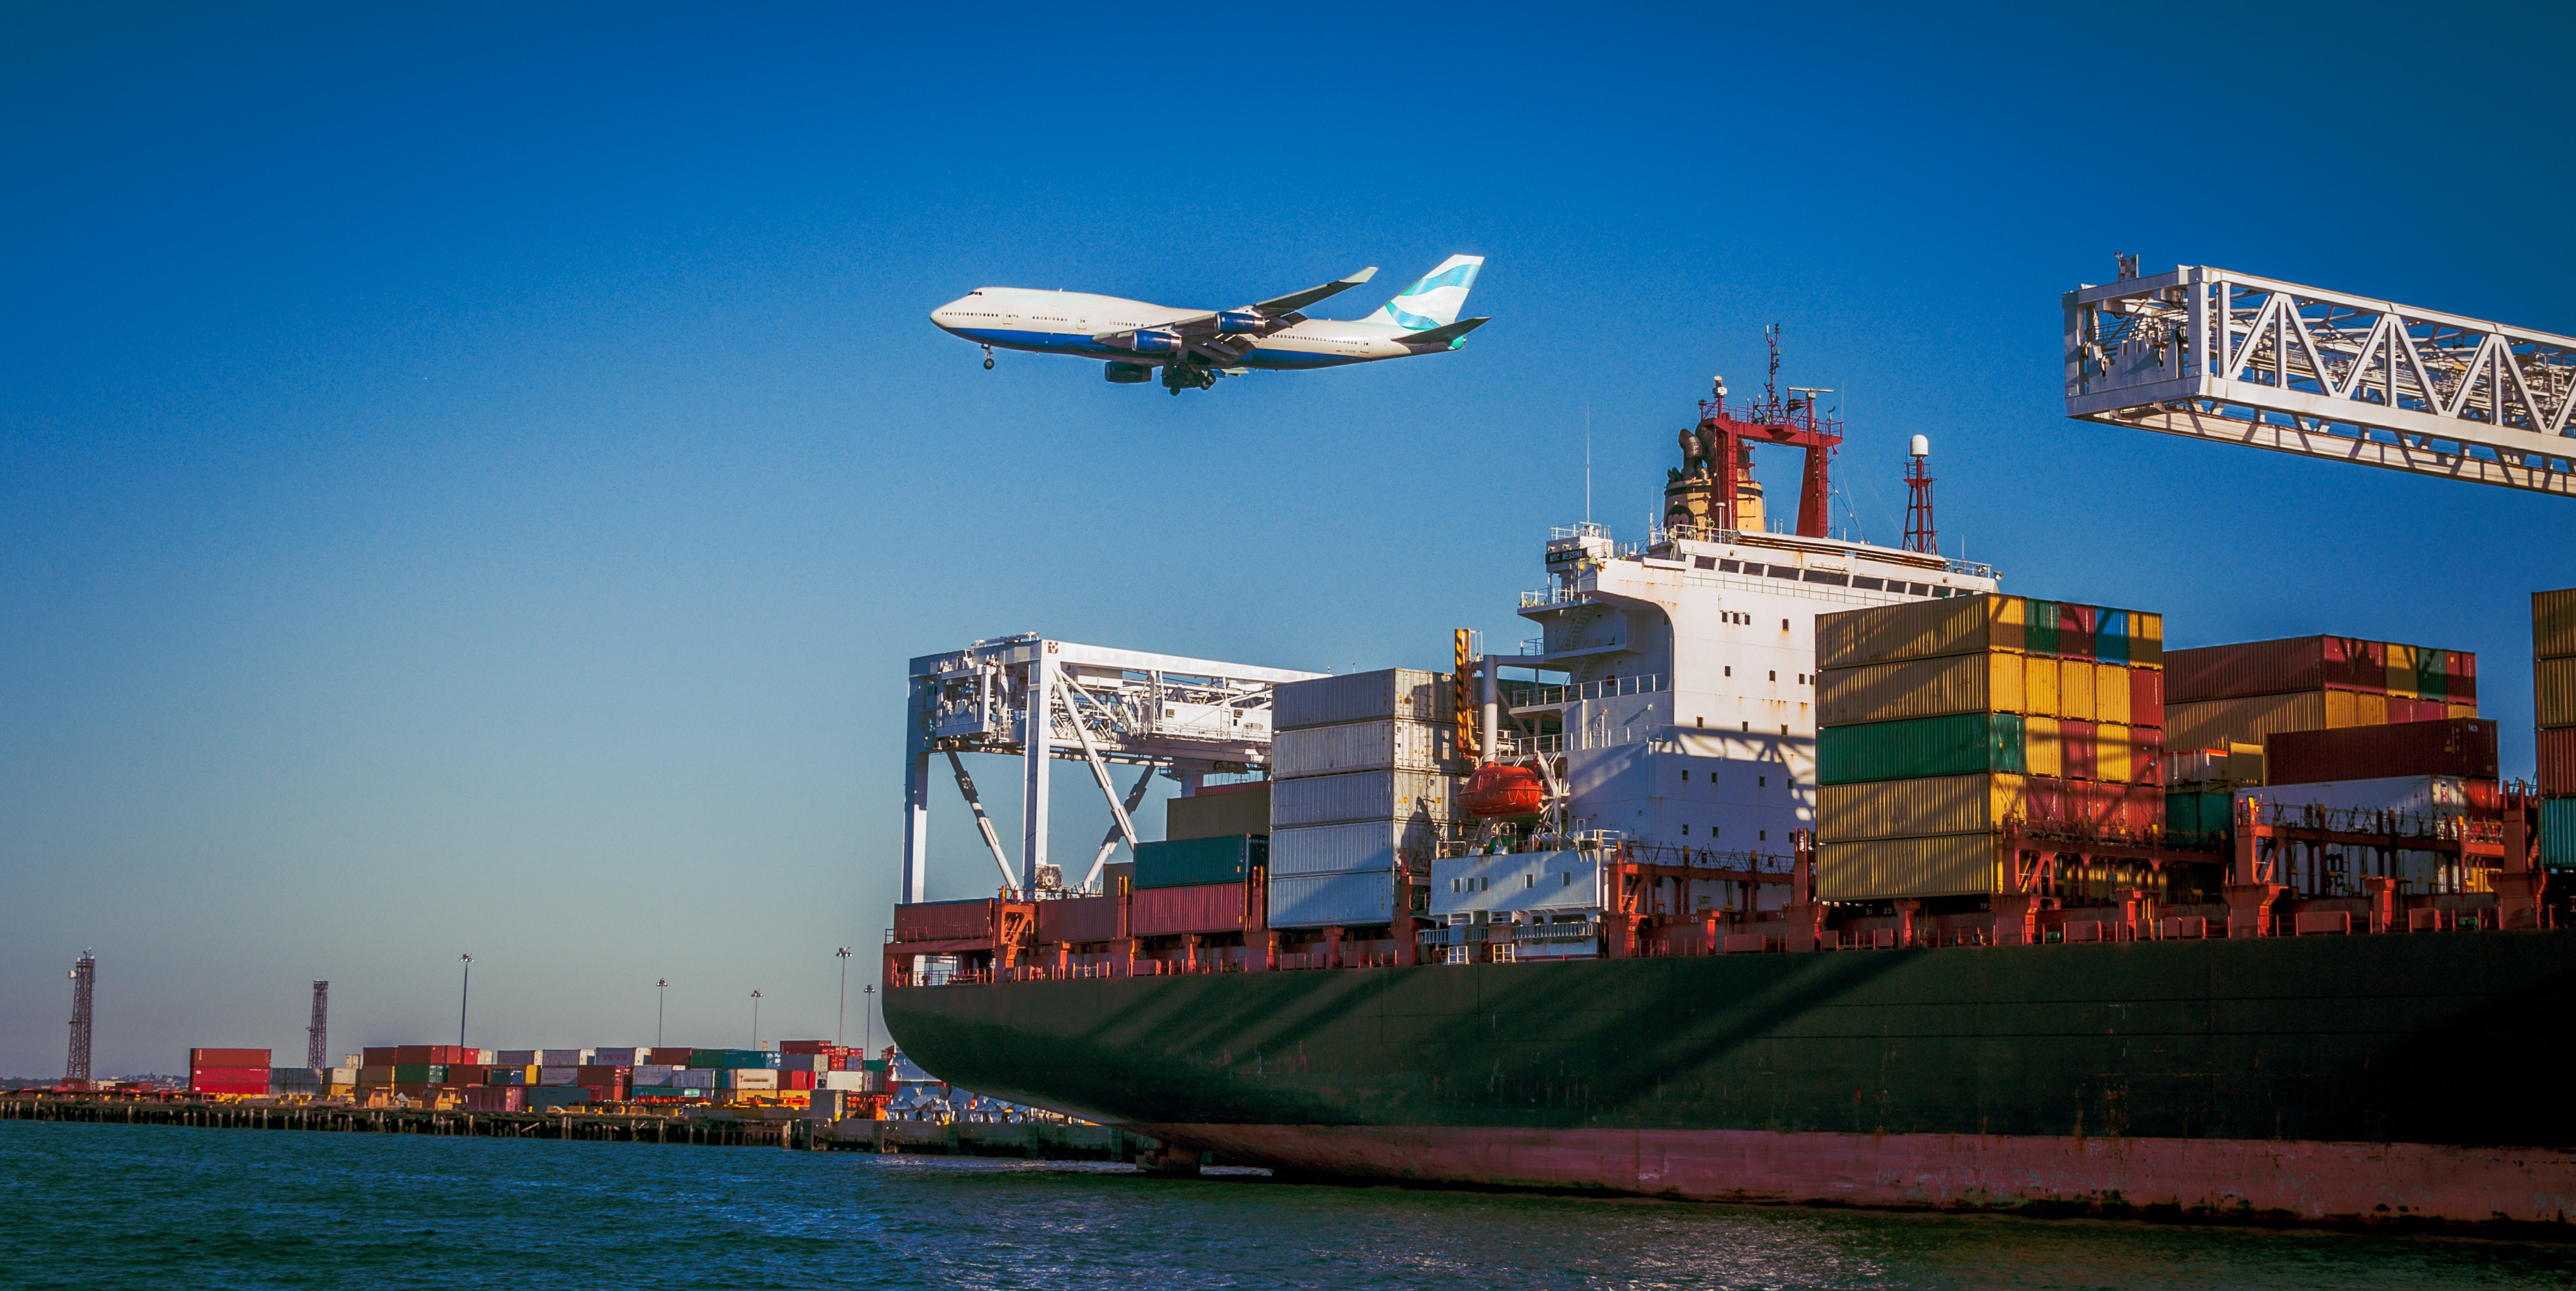 Photo showing a container ship at the port and an airplane in the sky